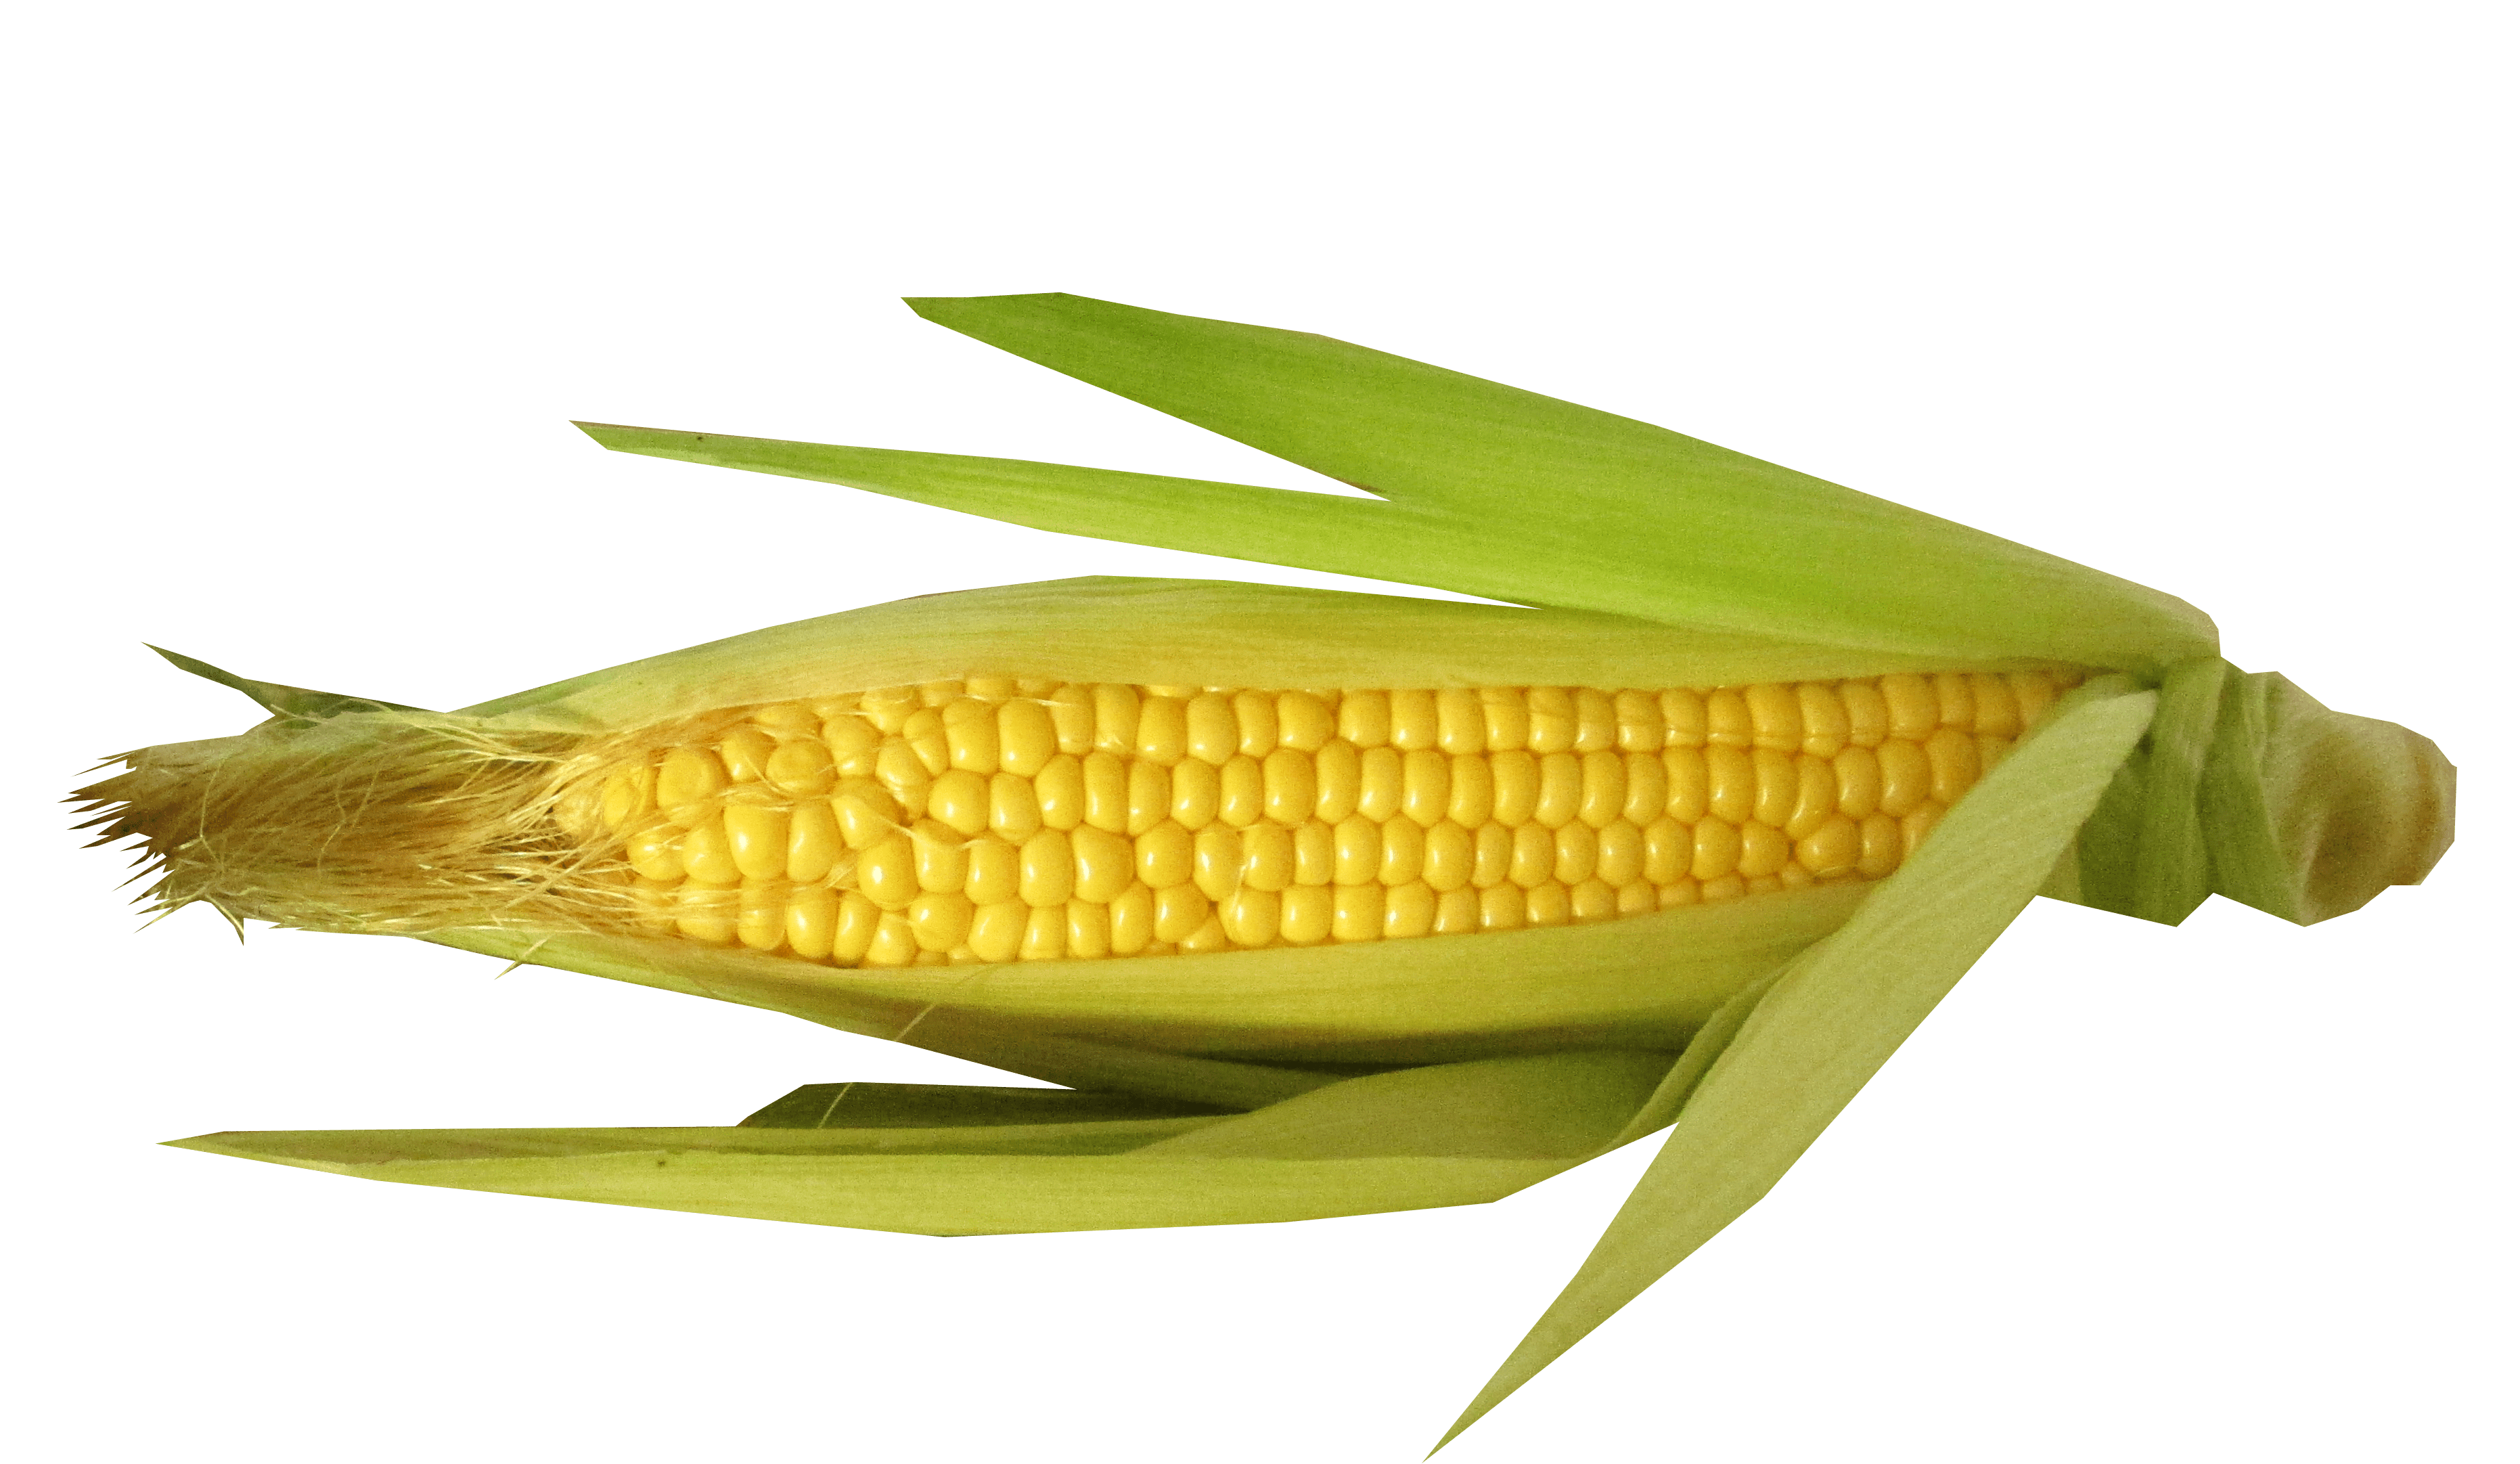 Iphone X Wallpaper Stock Hd Free Stock Photo Of Corn Cut Out